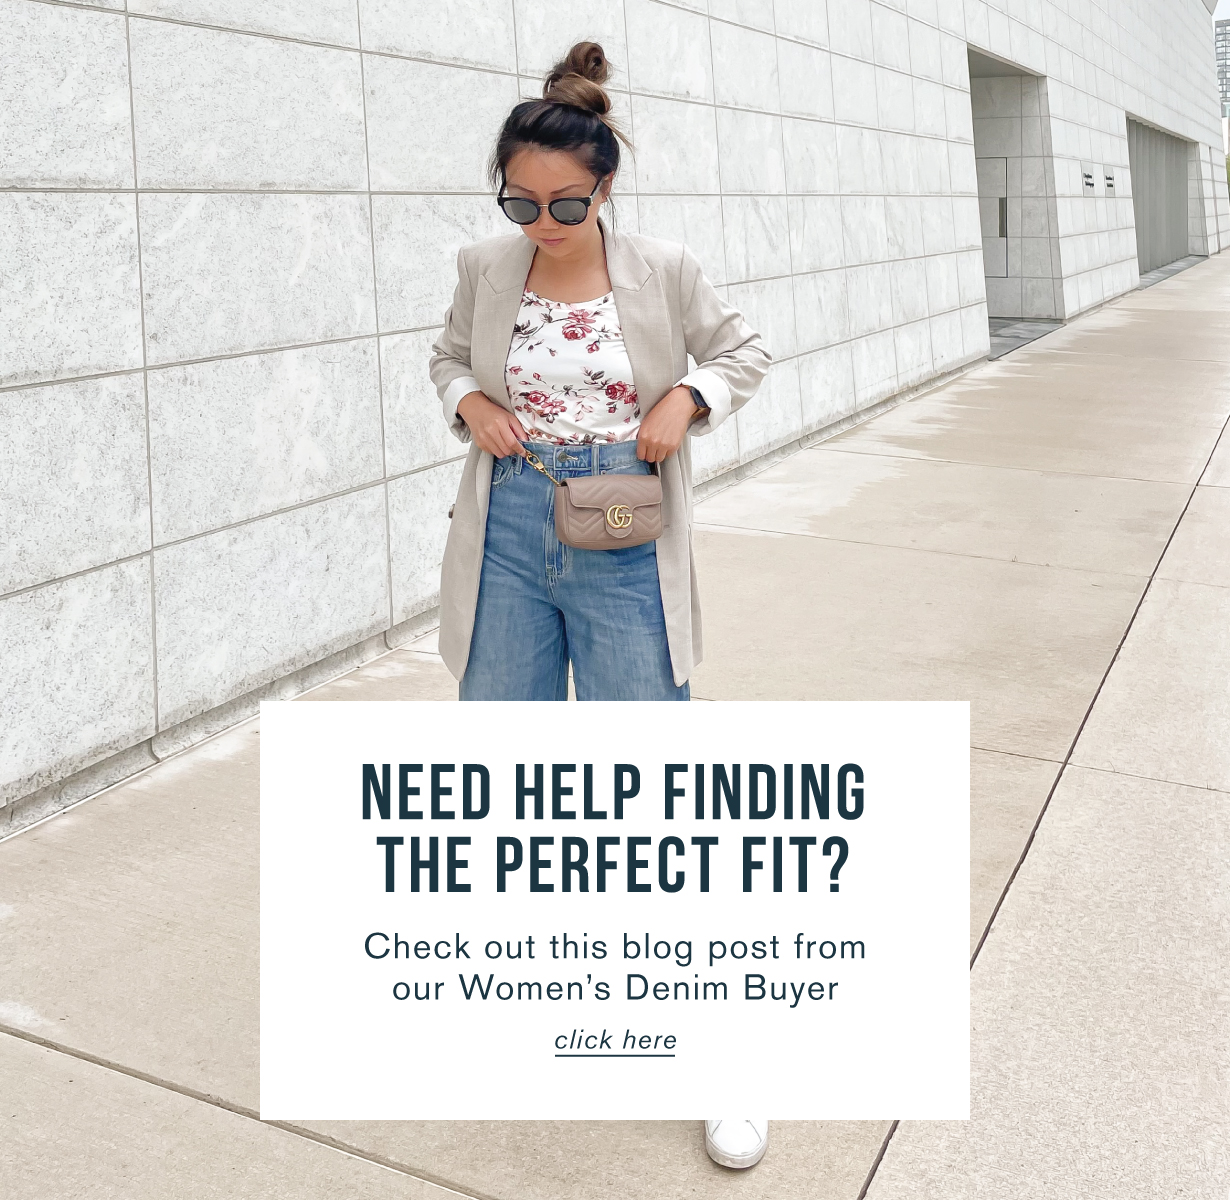 Need help finding the perfect fit? Check out this blog post from our women's denim buyer. Click here.